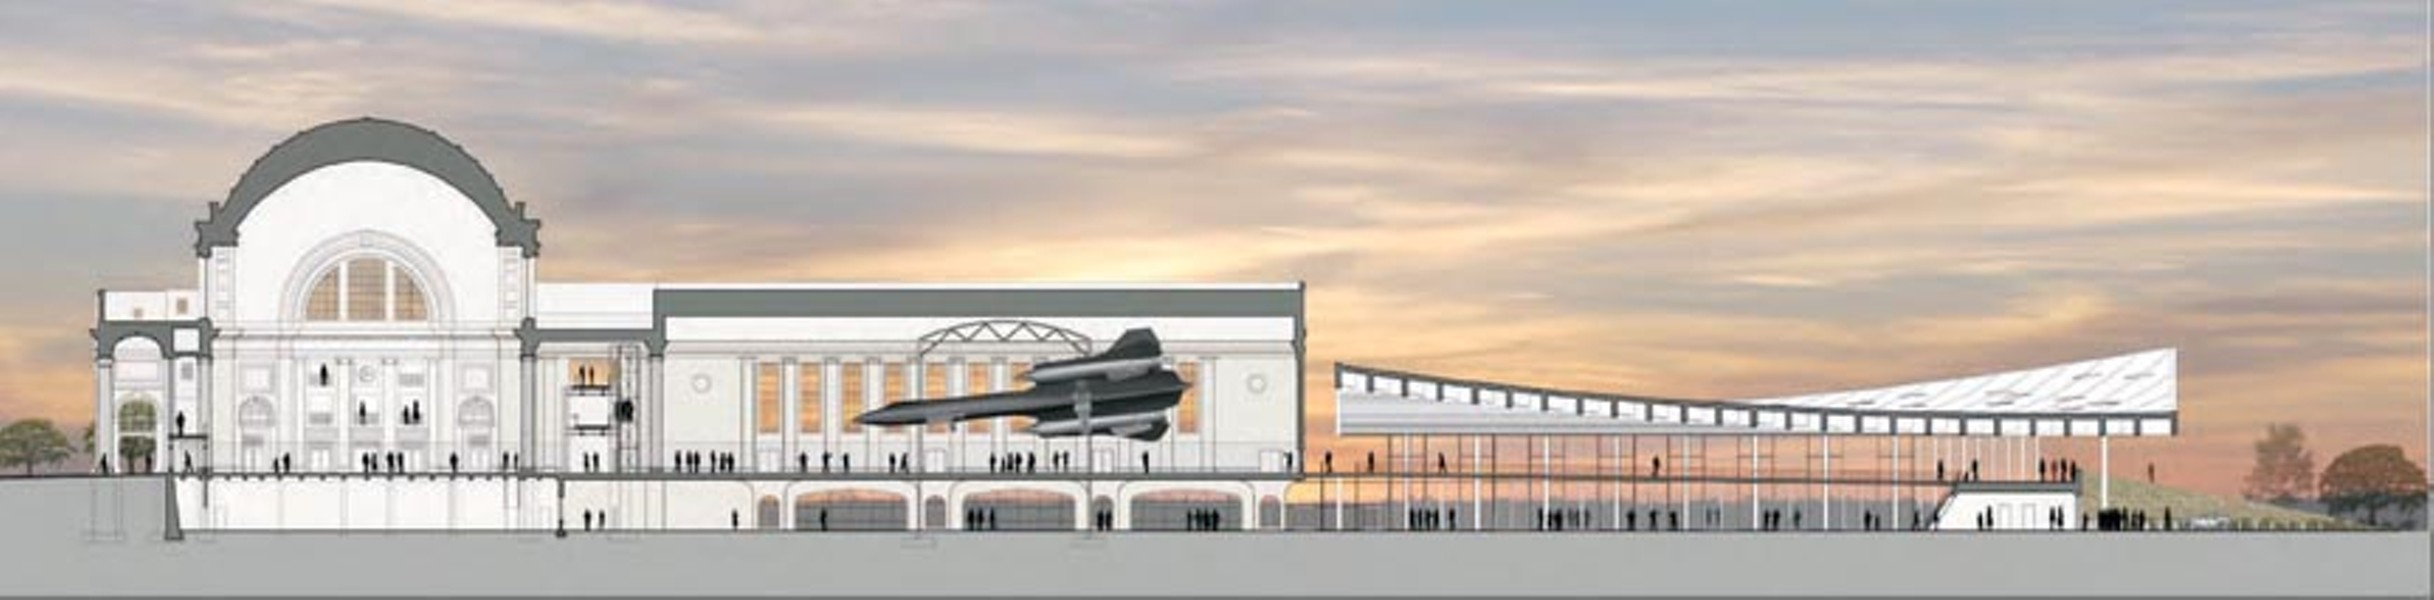 "The new ""Speed"" exhibit at the Science Museum, featuring an SR-71 military jet, is expected to open in late 2014. An adjoining events pavilion remains in the design phase. - SCIENCE MUSEUM OF VIRGINIA"